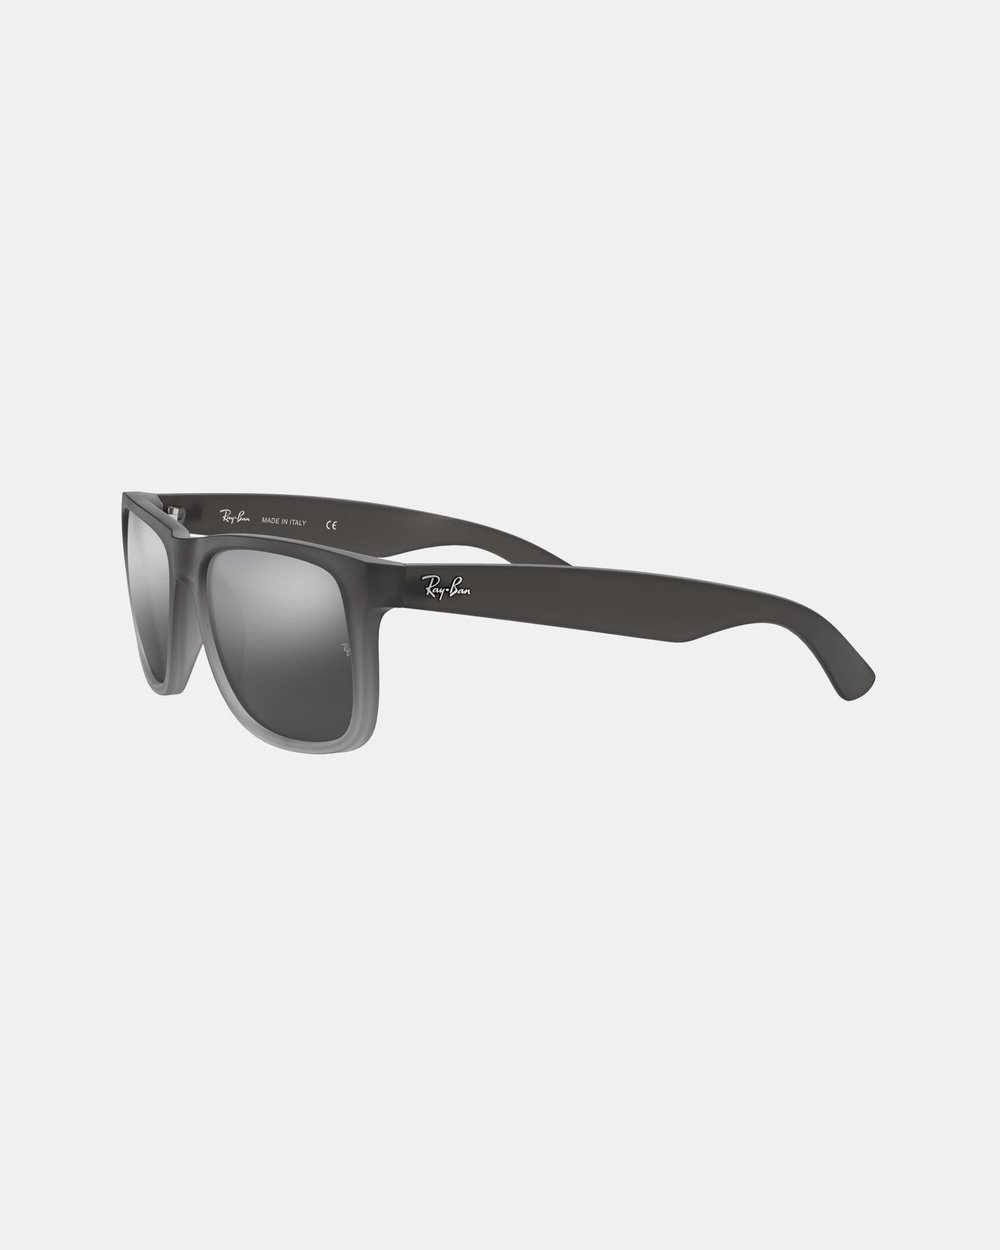 606be711a48 Justin by Ray-Ban Online